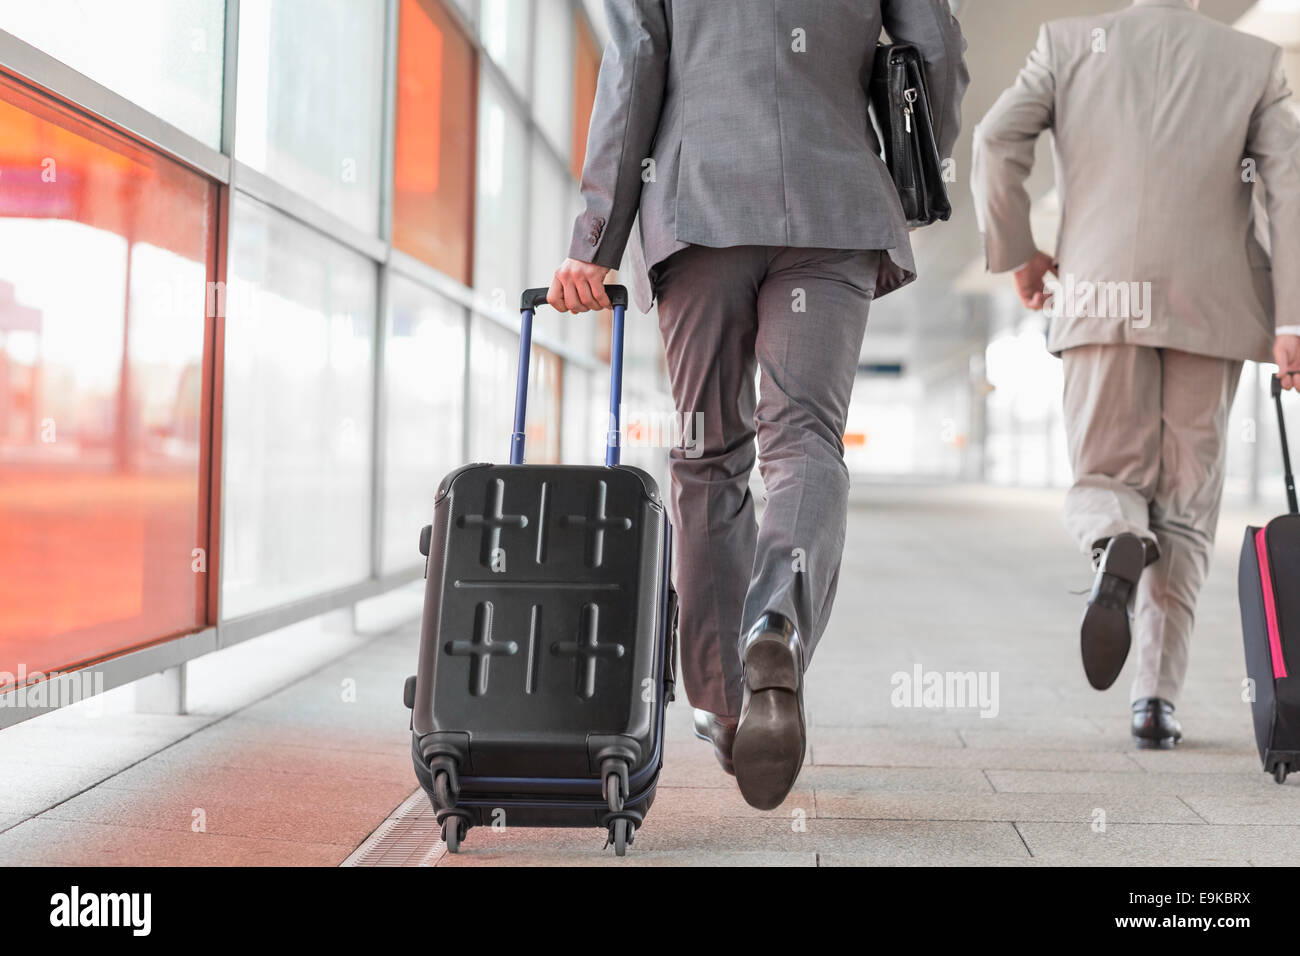 Rear view of businessmen with luggage running on railroad platform - Stock Image